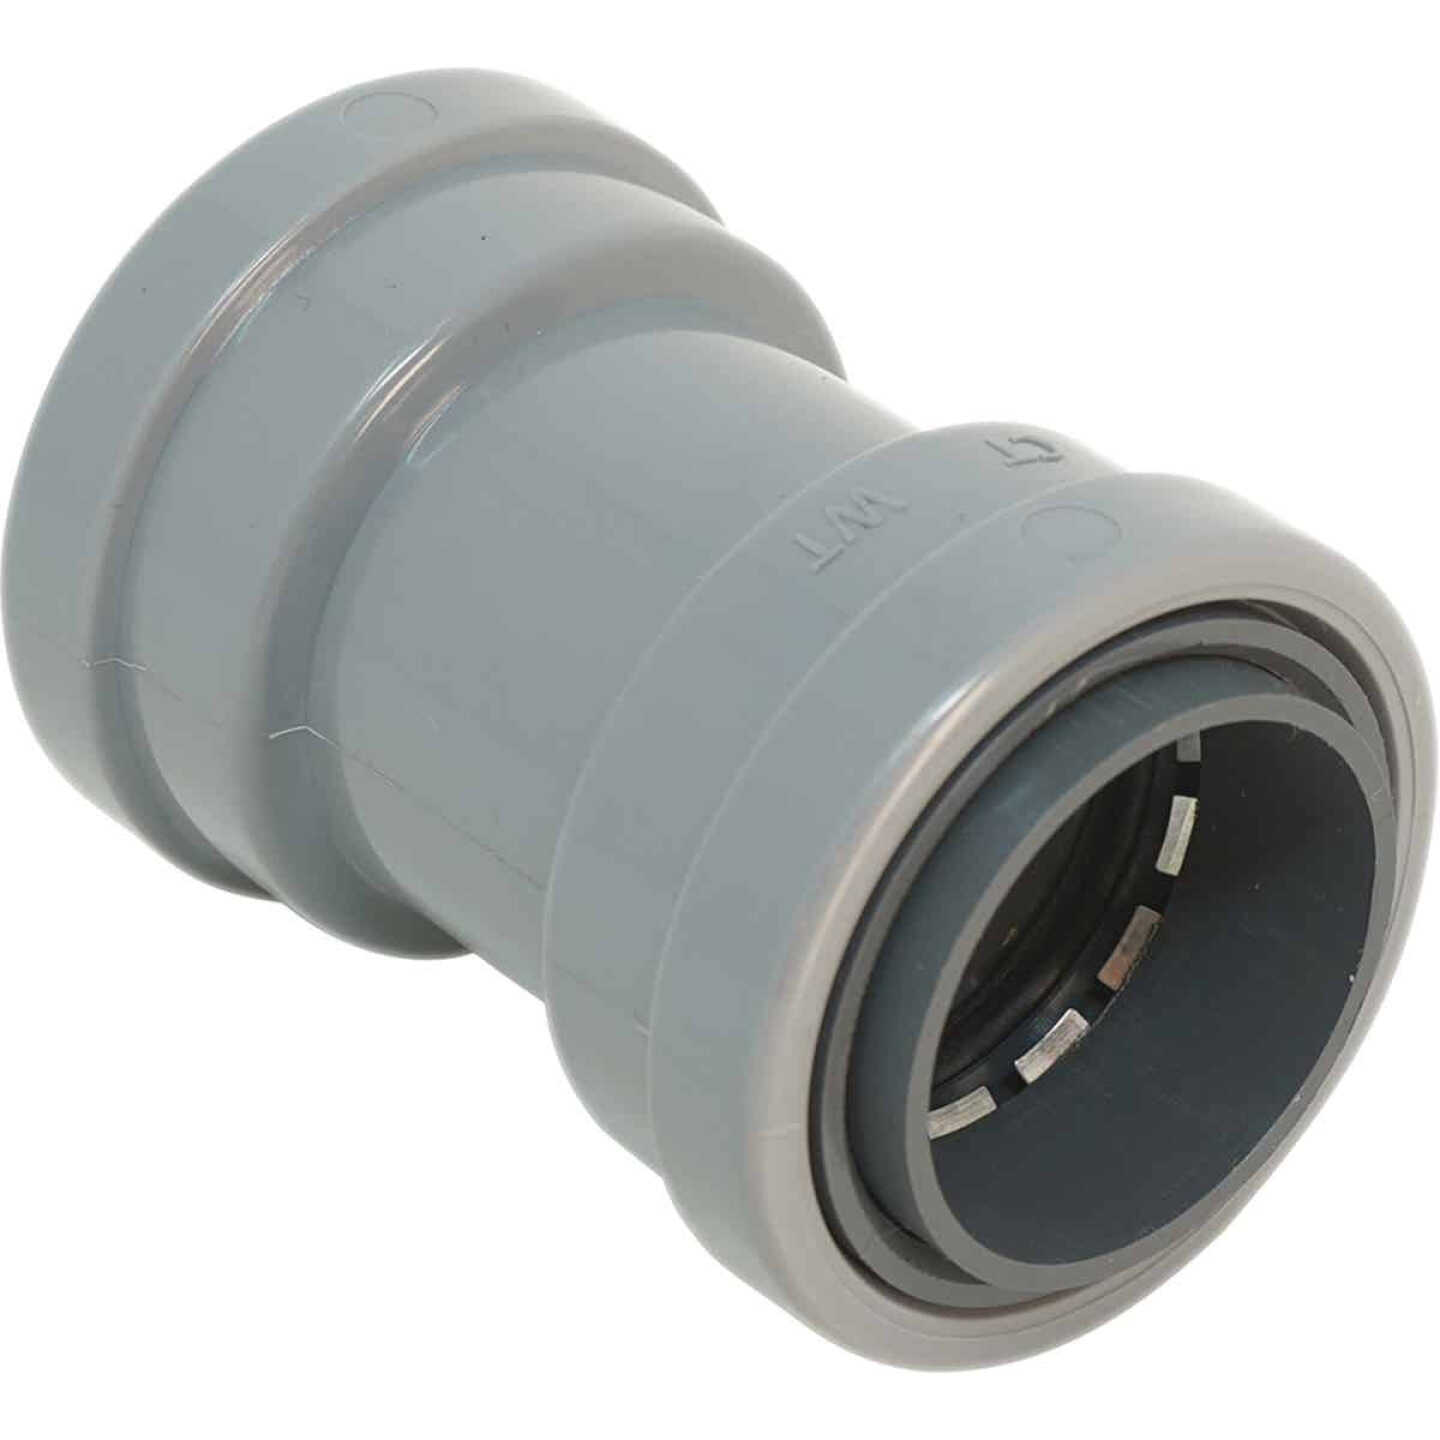 Southwire SimPush 3/4 In. PVC-CIC Push-To-Install Conduit Coupling (5-Pack) Image 1